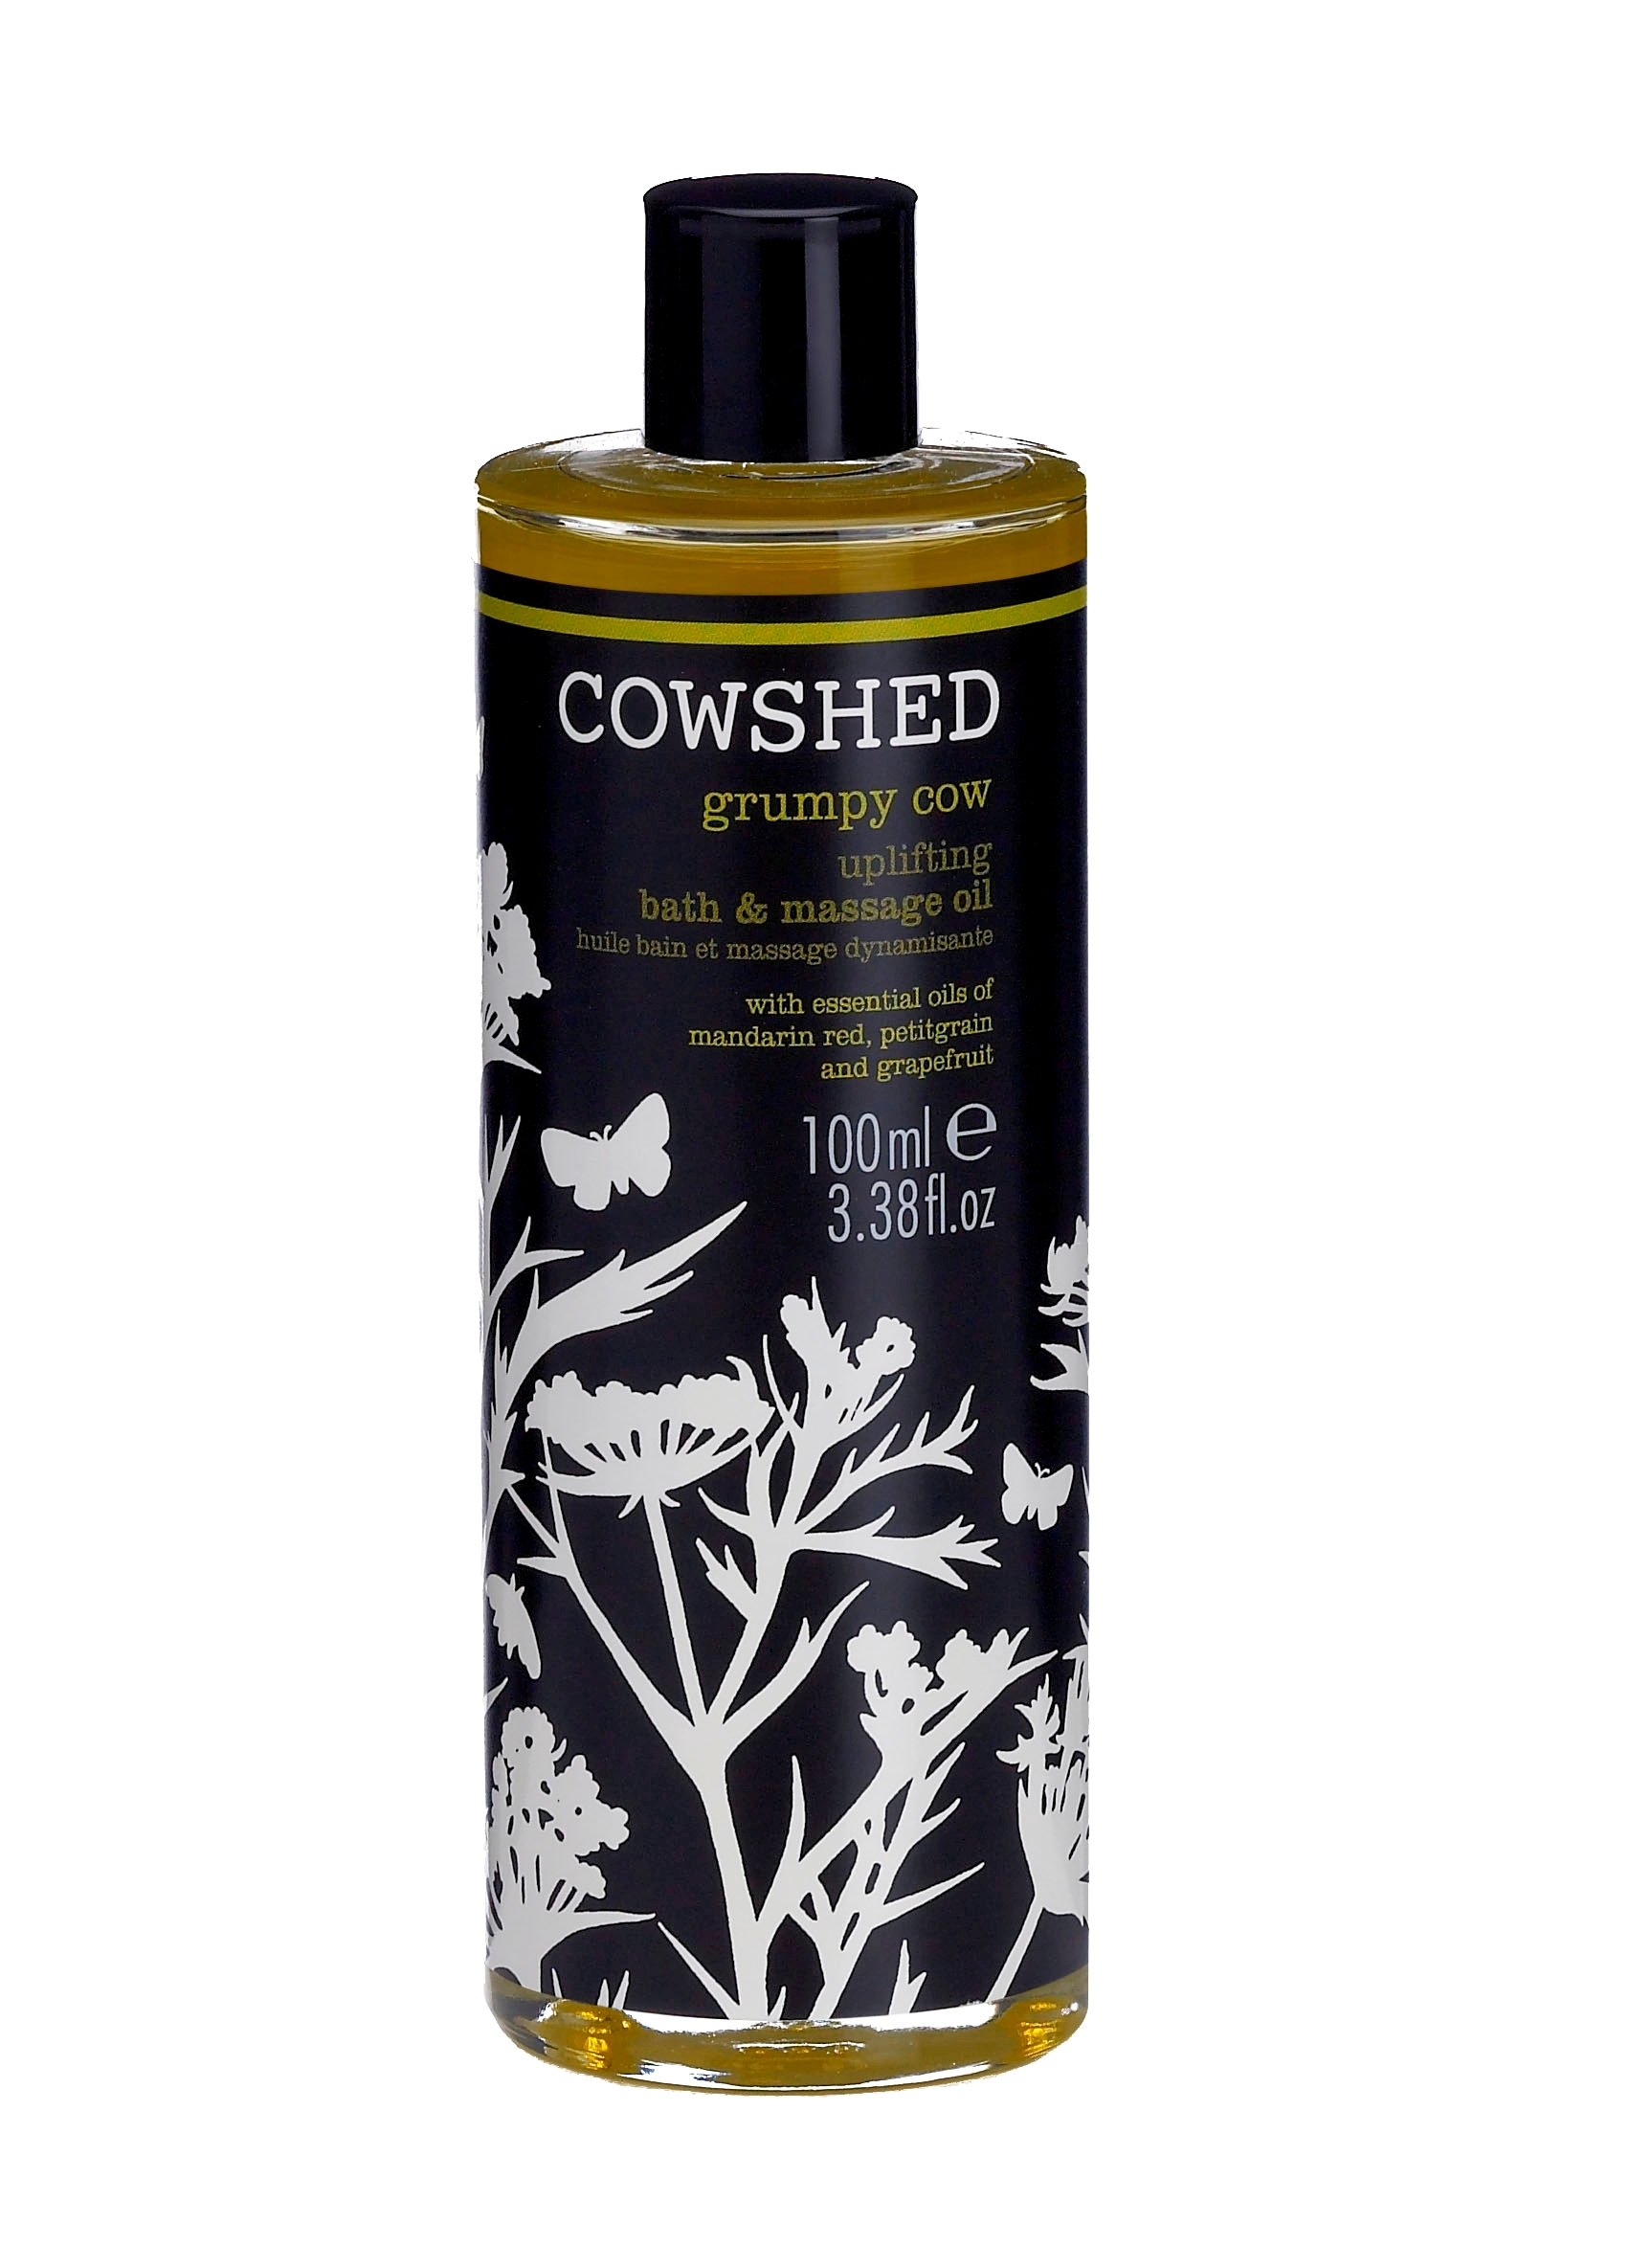 Cowshed Grumpy Cow Uplifting Bath & Massage Oil 100 ml.